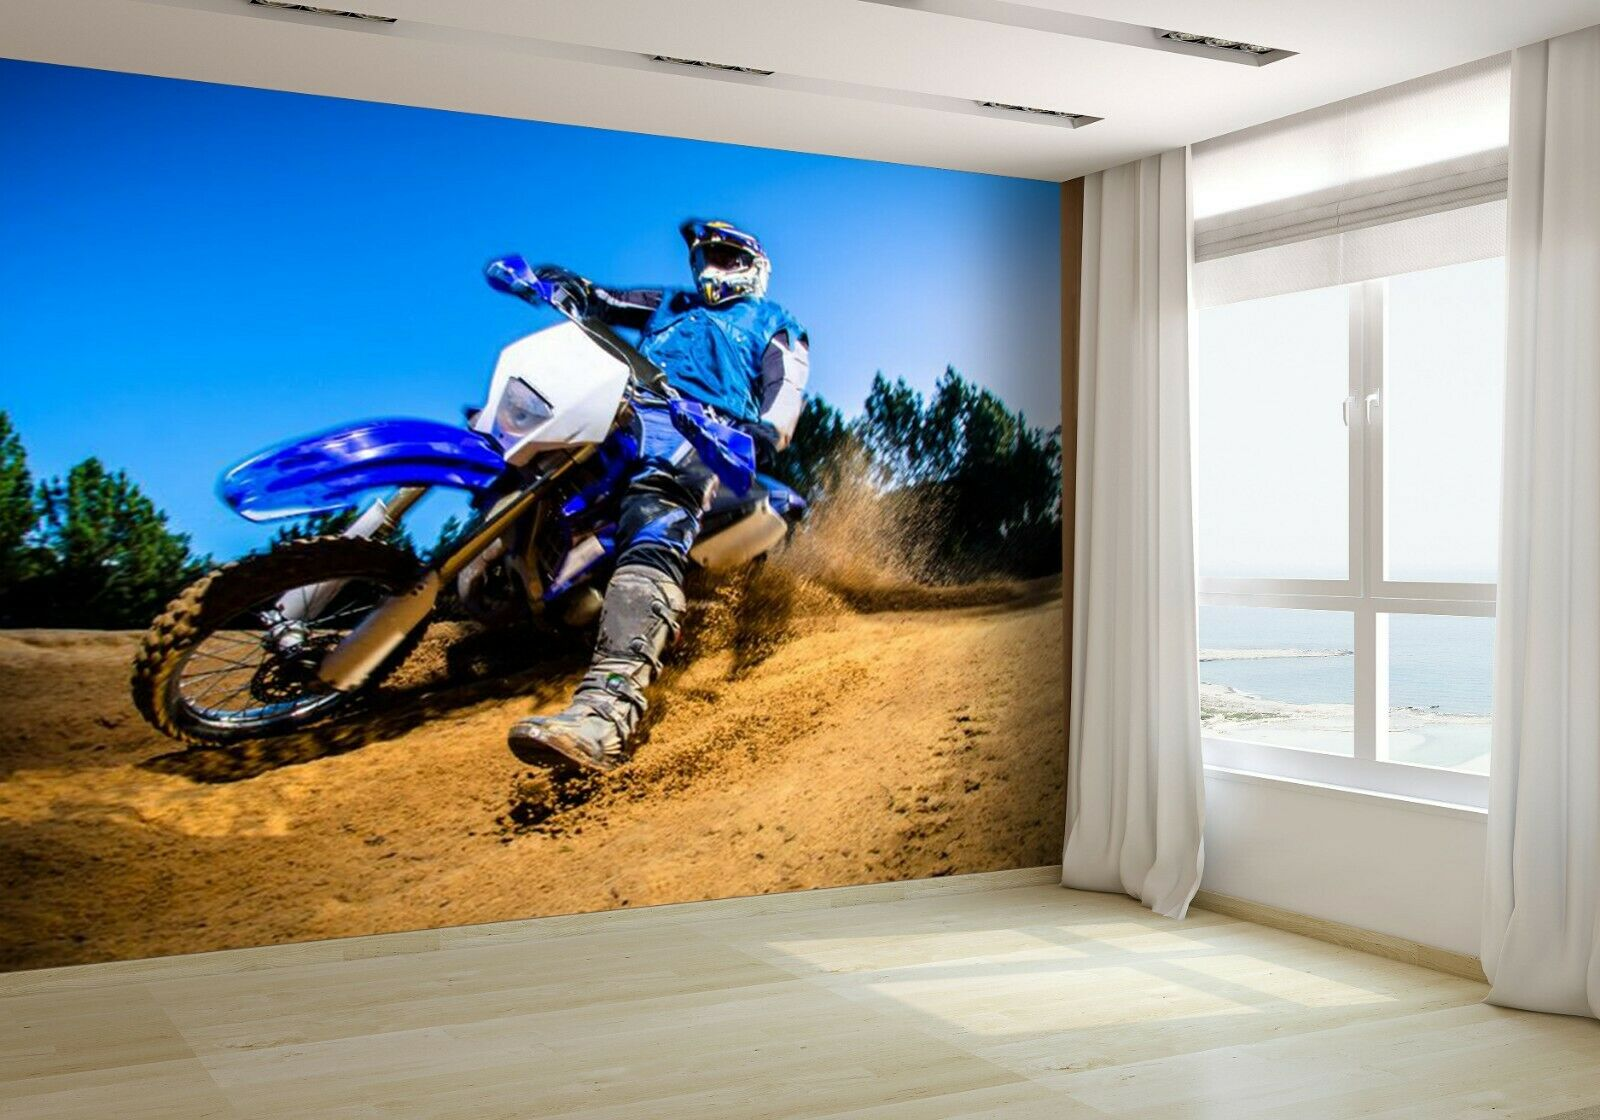 Enduro Bike Rider on Action Wallpaper Mural Photo 16711228 budget paper